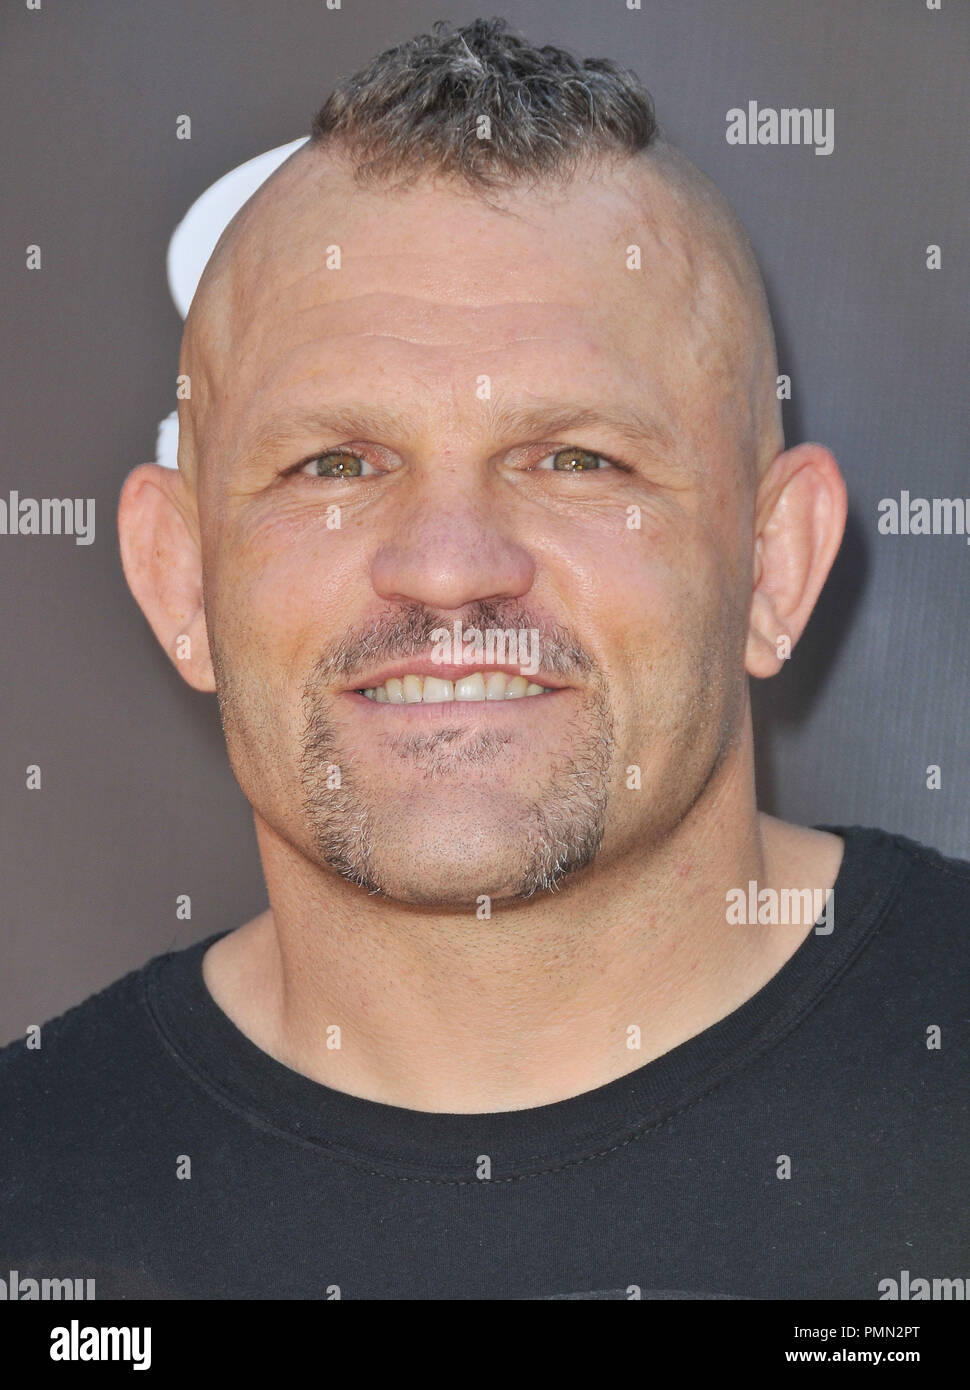 UFC Fighter Chuck Liddell at Tony Hawk's 8th Annual Stand Up For Skateparks Benefit held at Ron Burkle's Green Acres Estate in Beverly Hills, CA. The event took place on Sunday, October 2, 2011. Photo by PRPP_Pacific Rim Photo Press/ PictureLux - Stock Image